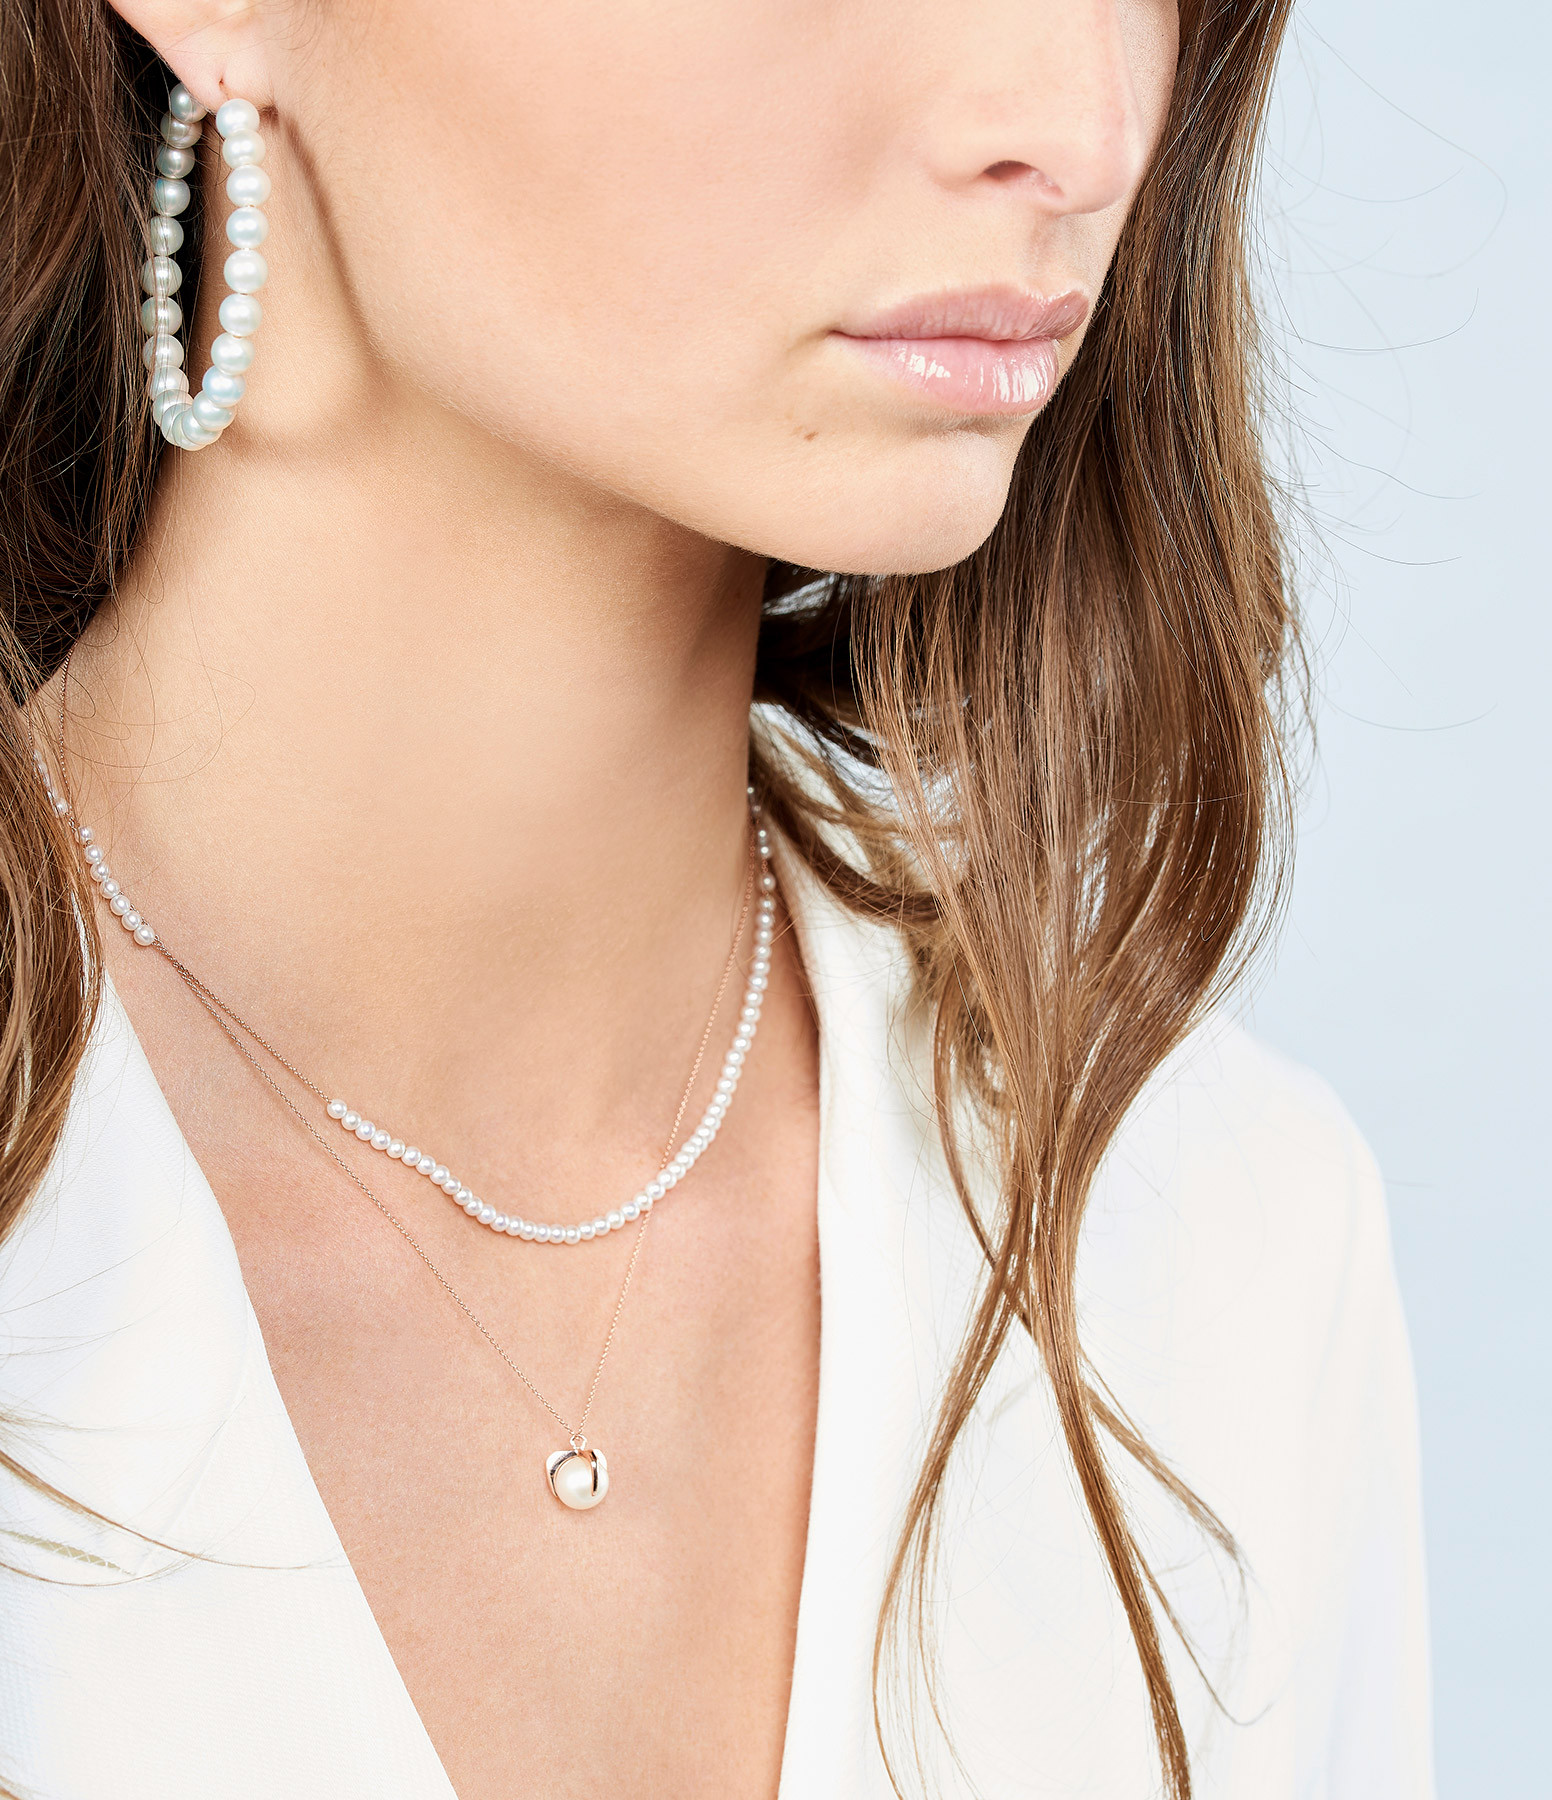 GINETTE_NY - Collier Maria Boulier Perle